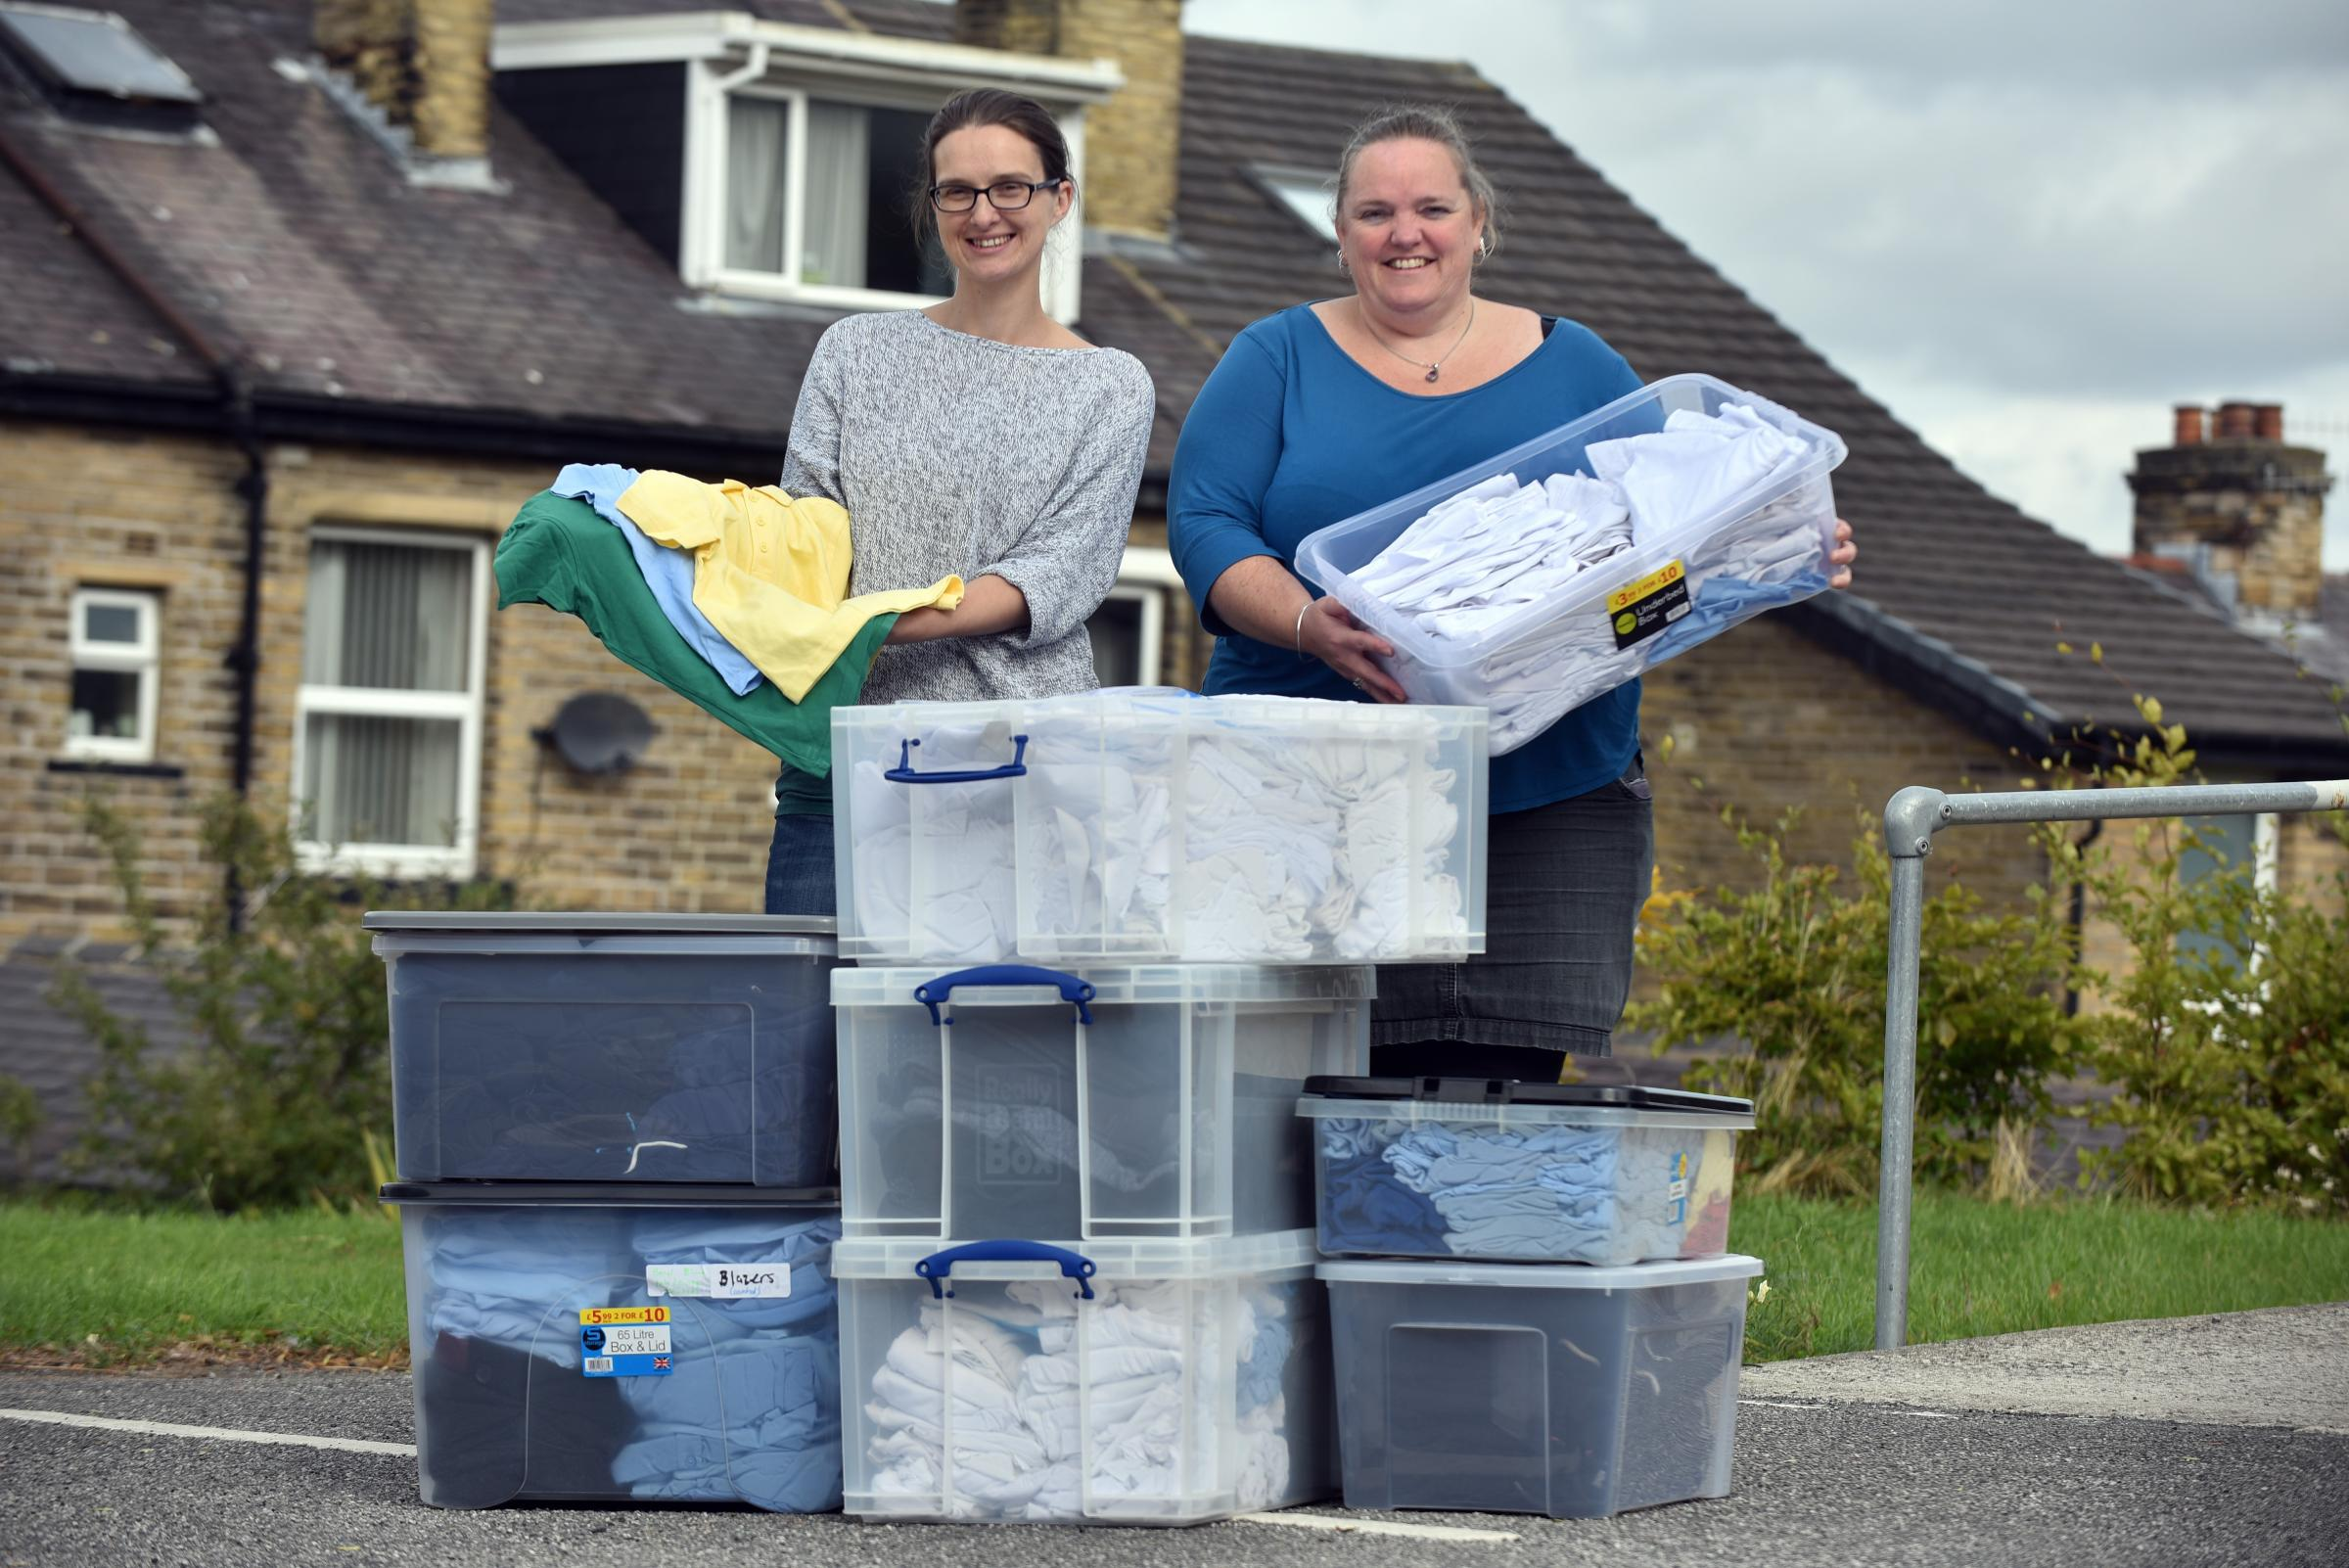 HELPING: Dawn Coleman and Emma Corbet from Shipley Area School Uniform Bank, set up to help families who may be struggling